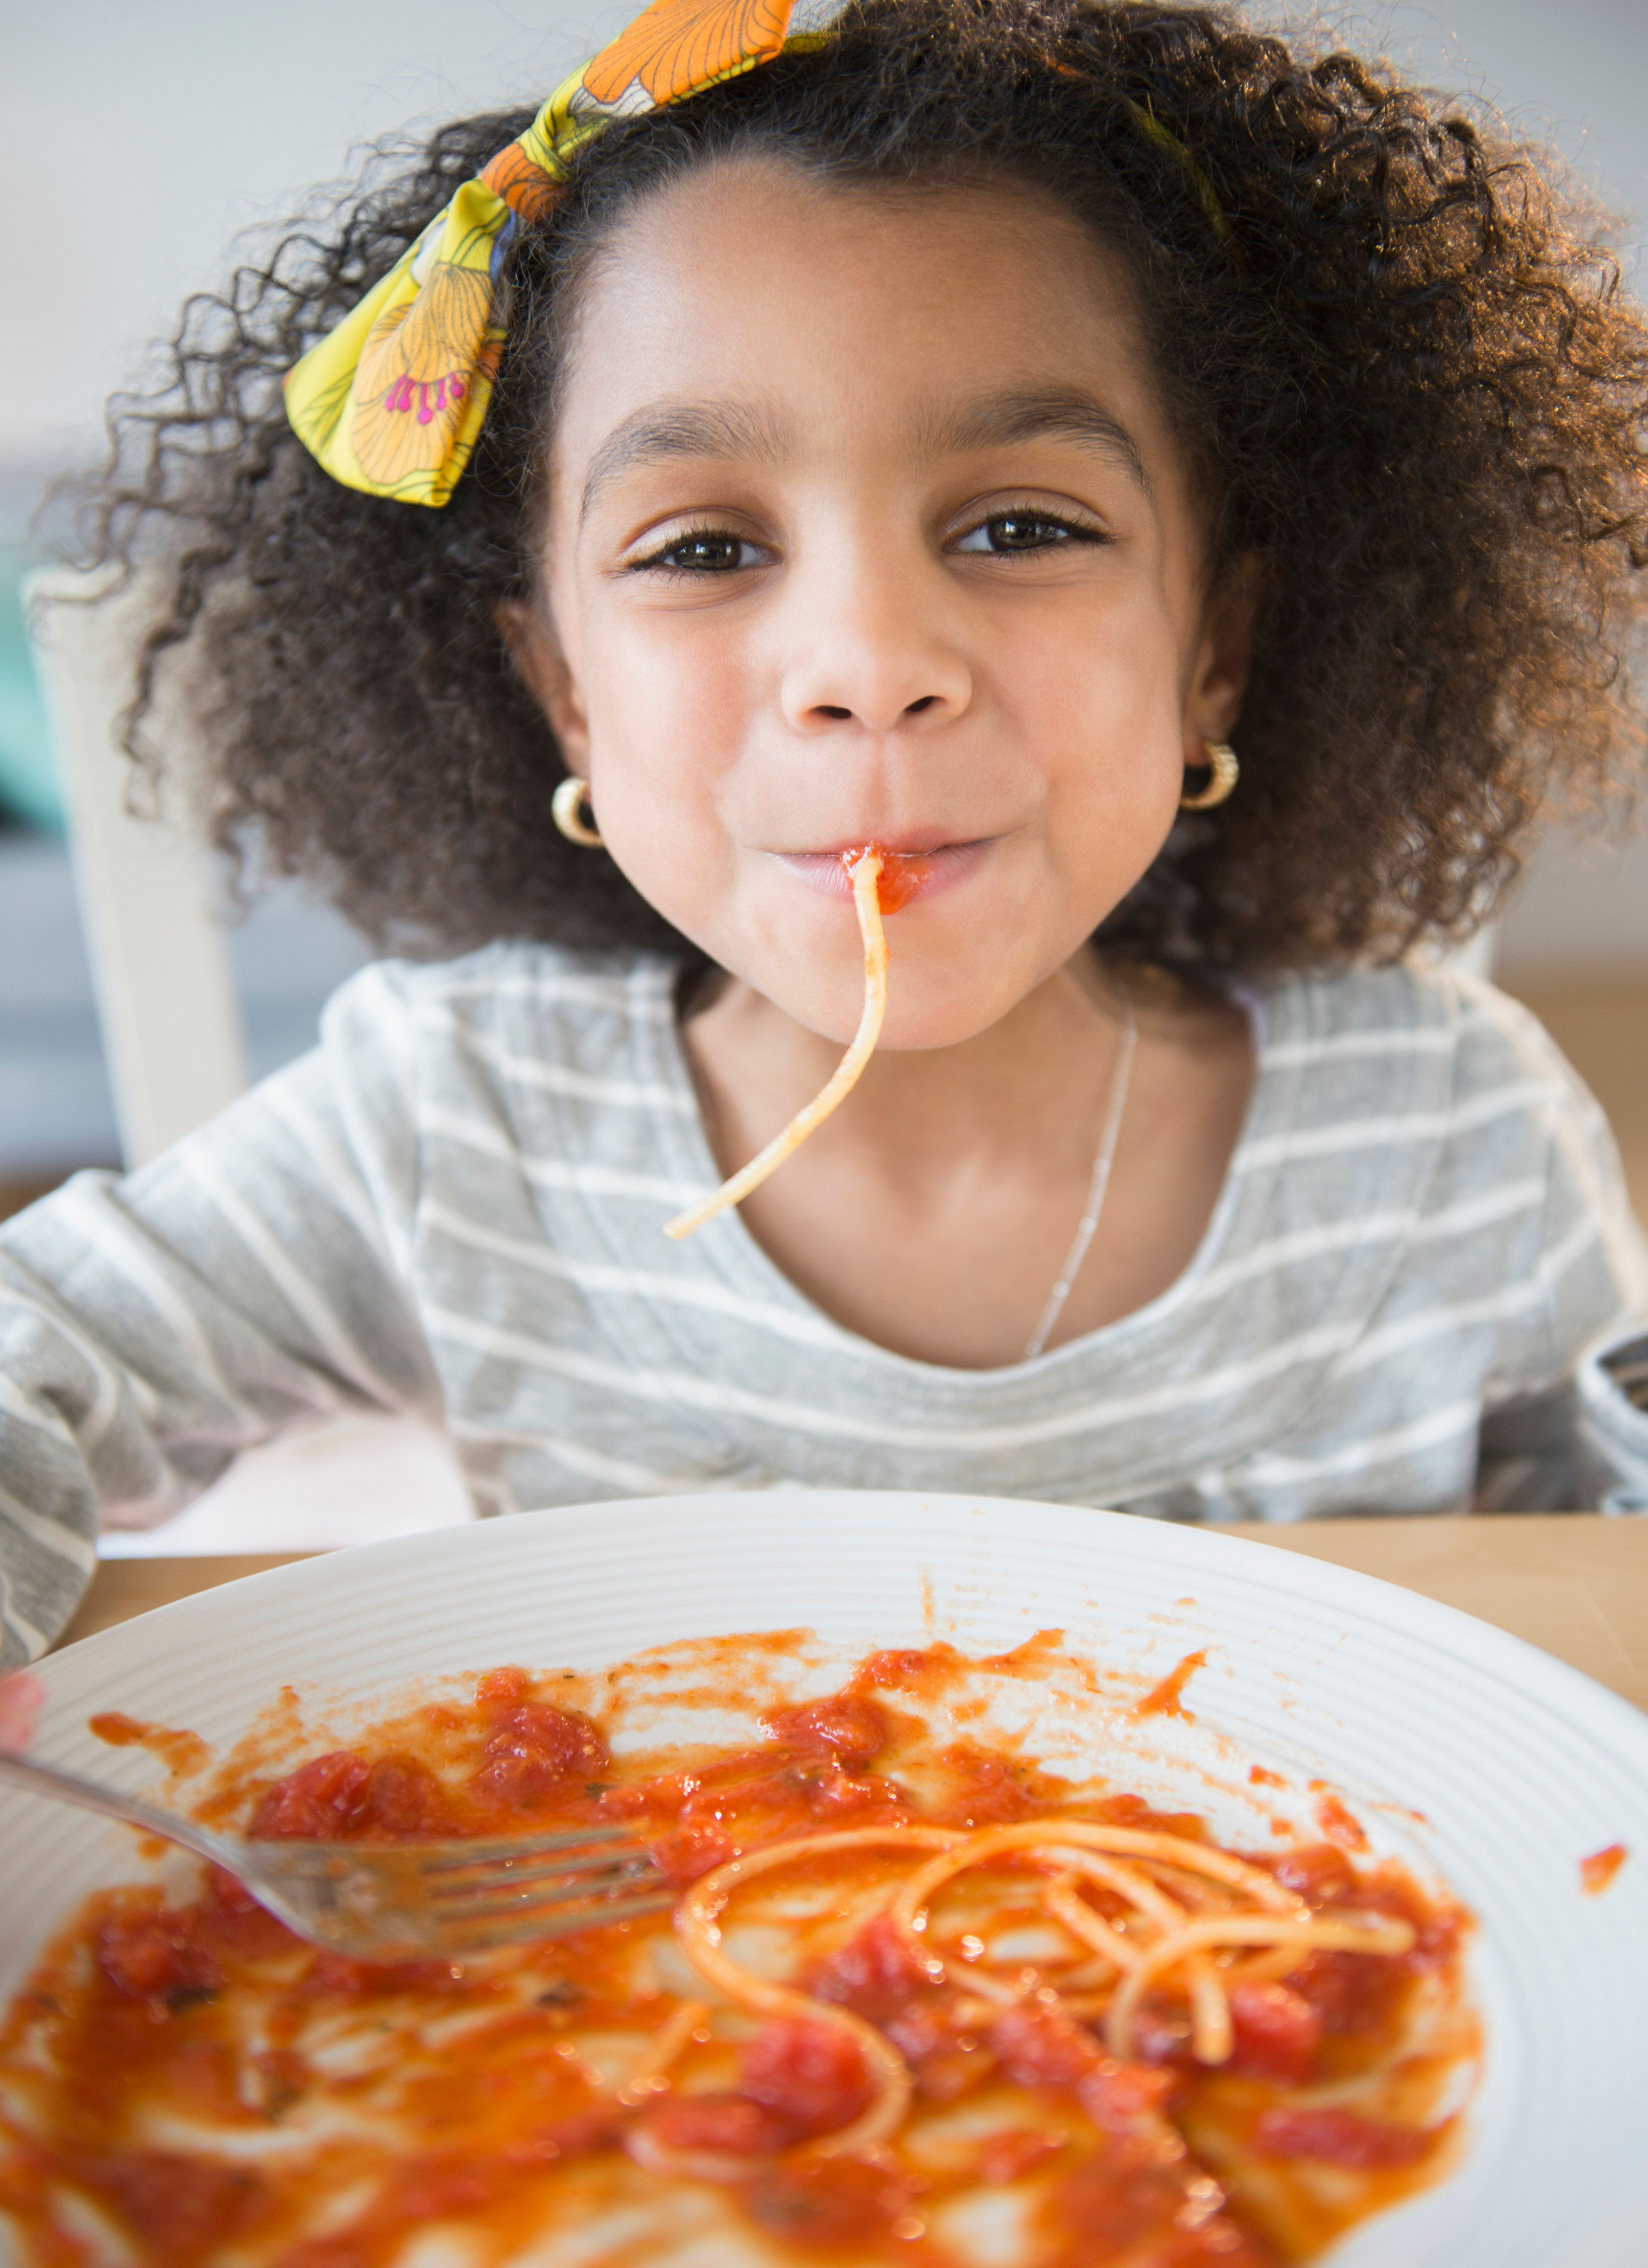 Here Are Some Of The Brands With The Highest Sugar Content In Pasta Sauce